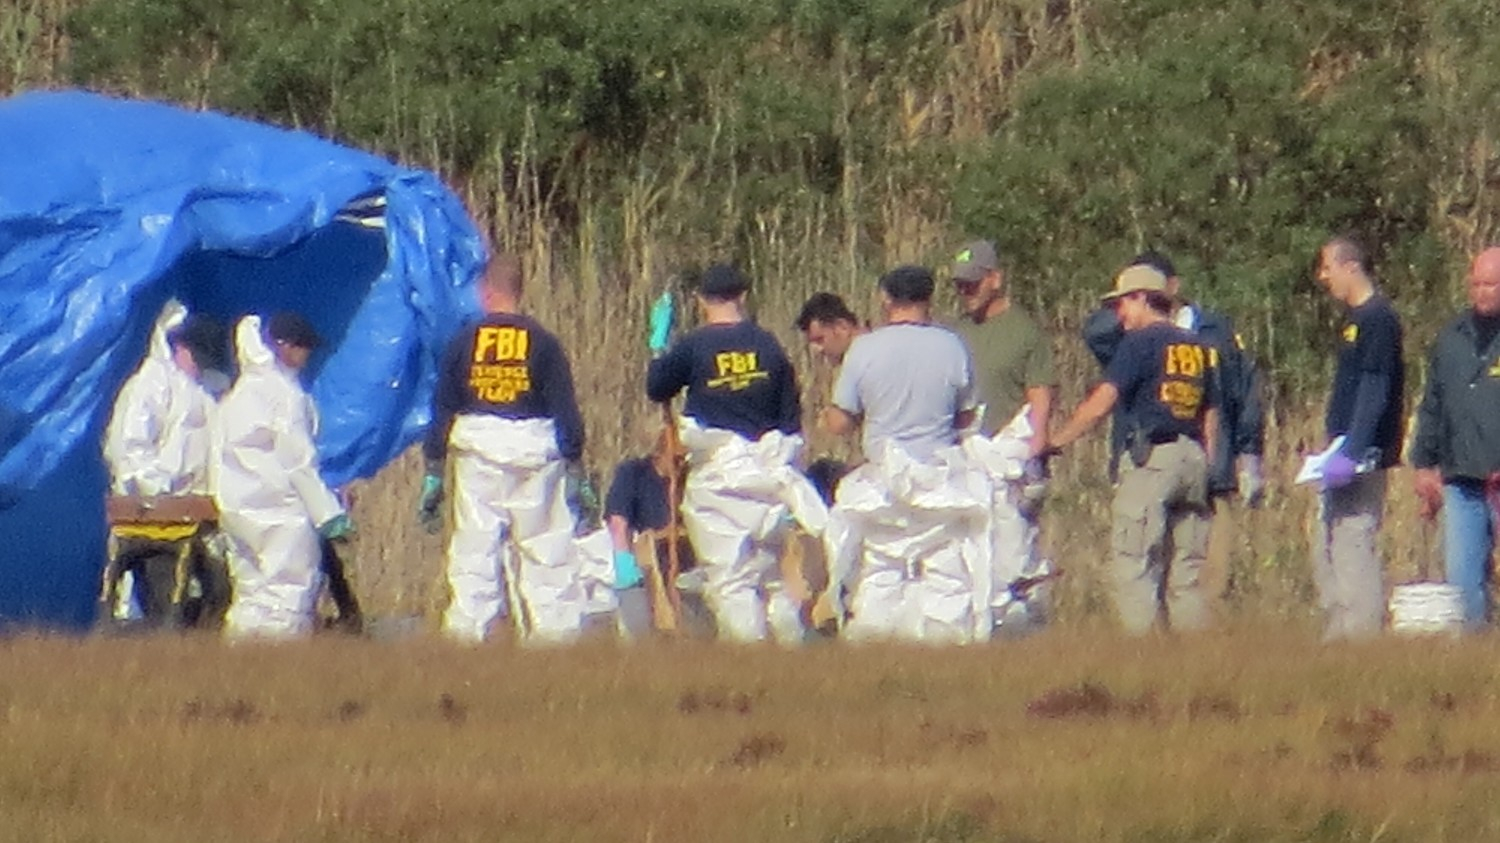 Crime Scene Investigators dug around the site of where the human remains were found on a wooded area in Cow Meadow Park in Freeport.